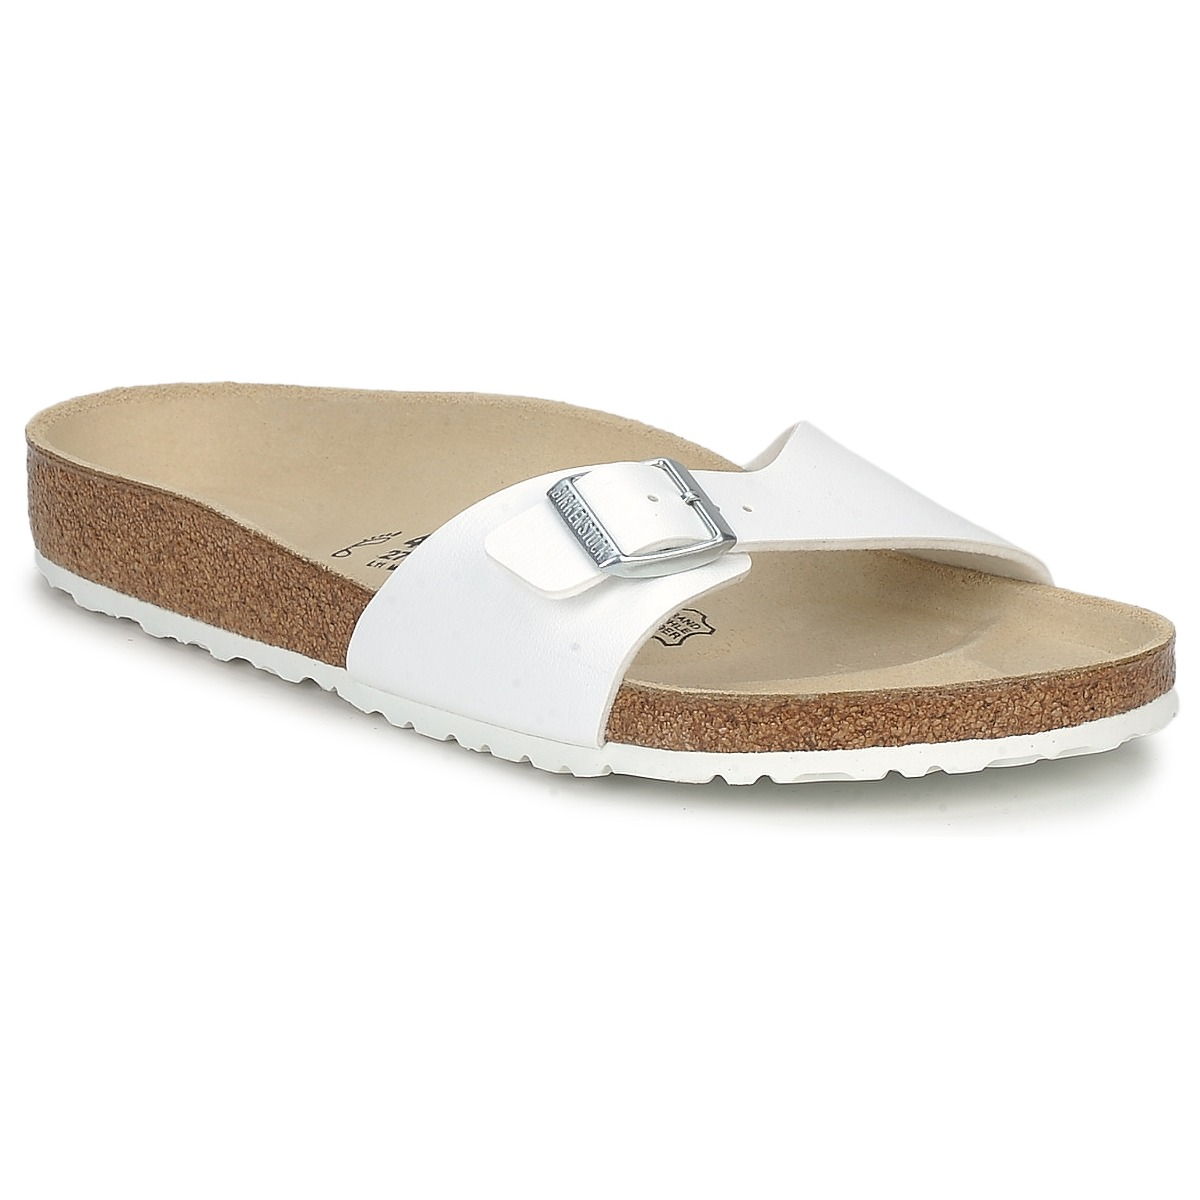 mules birkenstock madrid blanc livraison gratuite avec chaussures homme 51 99. Black Bedroom Furniture Sets. Home Design Ideas